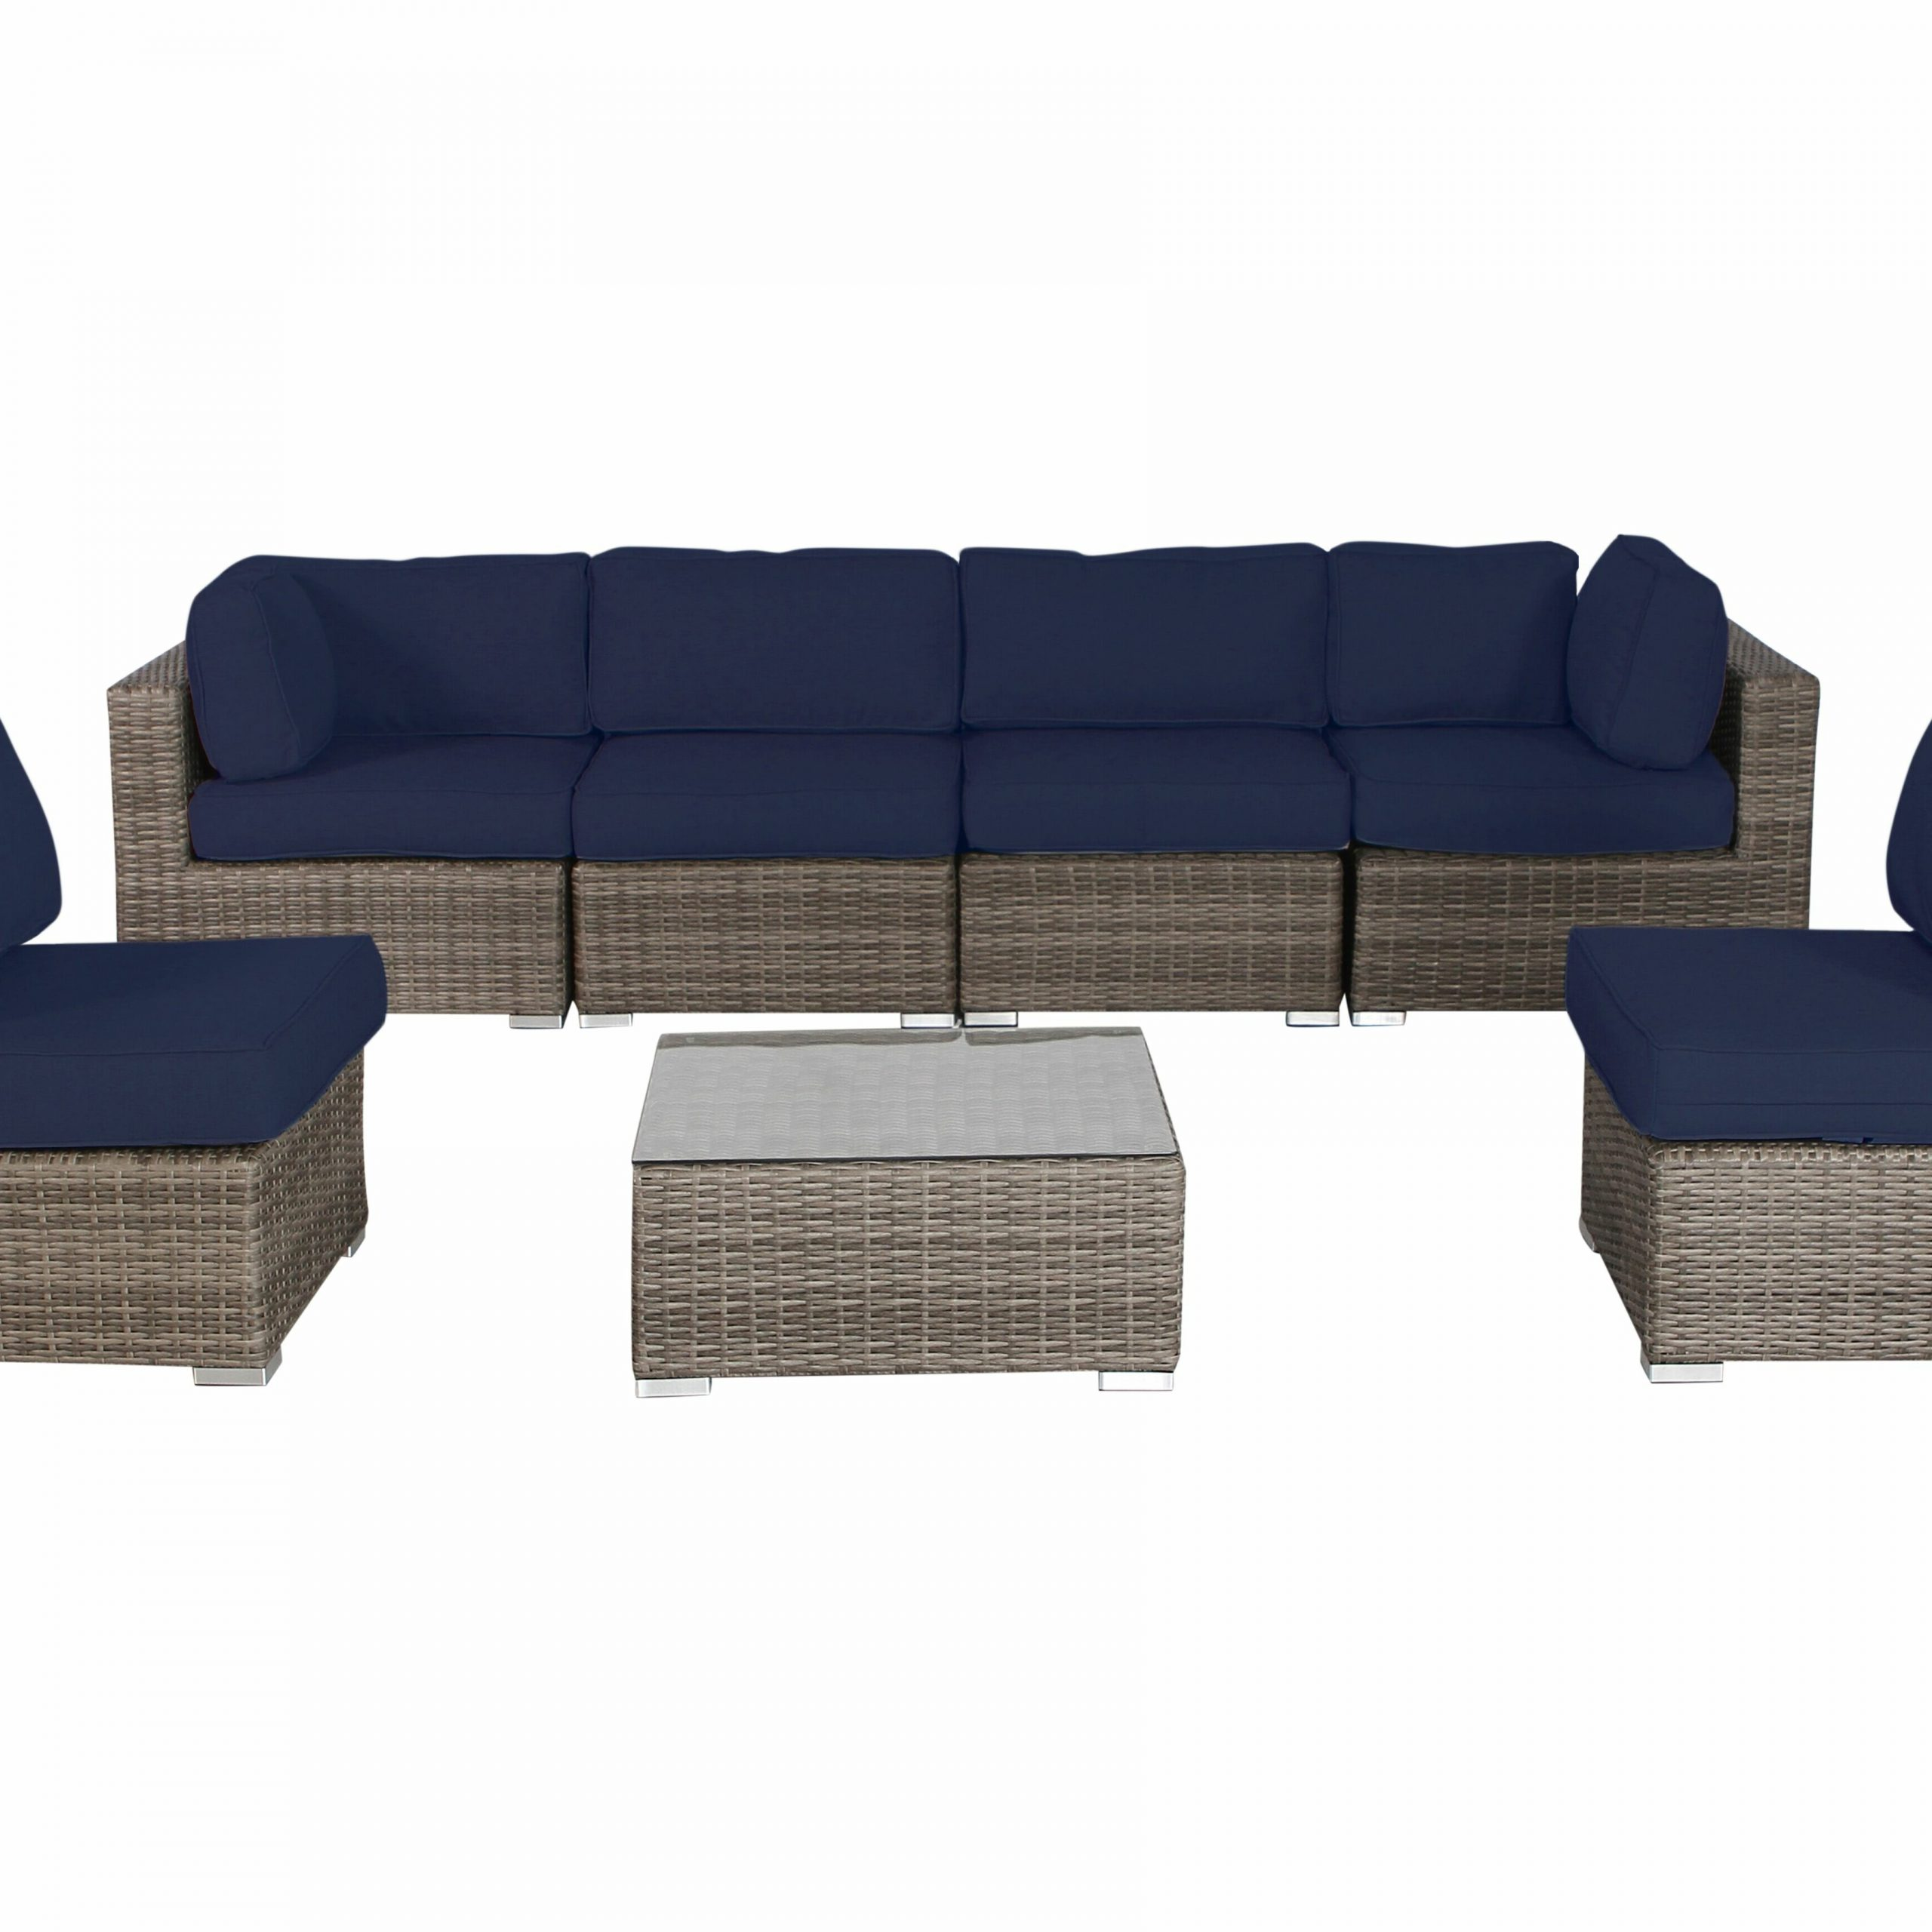 Most Current Deandra 7 Piece Rattan Sectional Set With Cushions Within Deandra Loveseats With Cushions (Gallery 10 of 25)